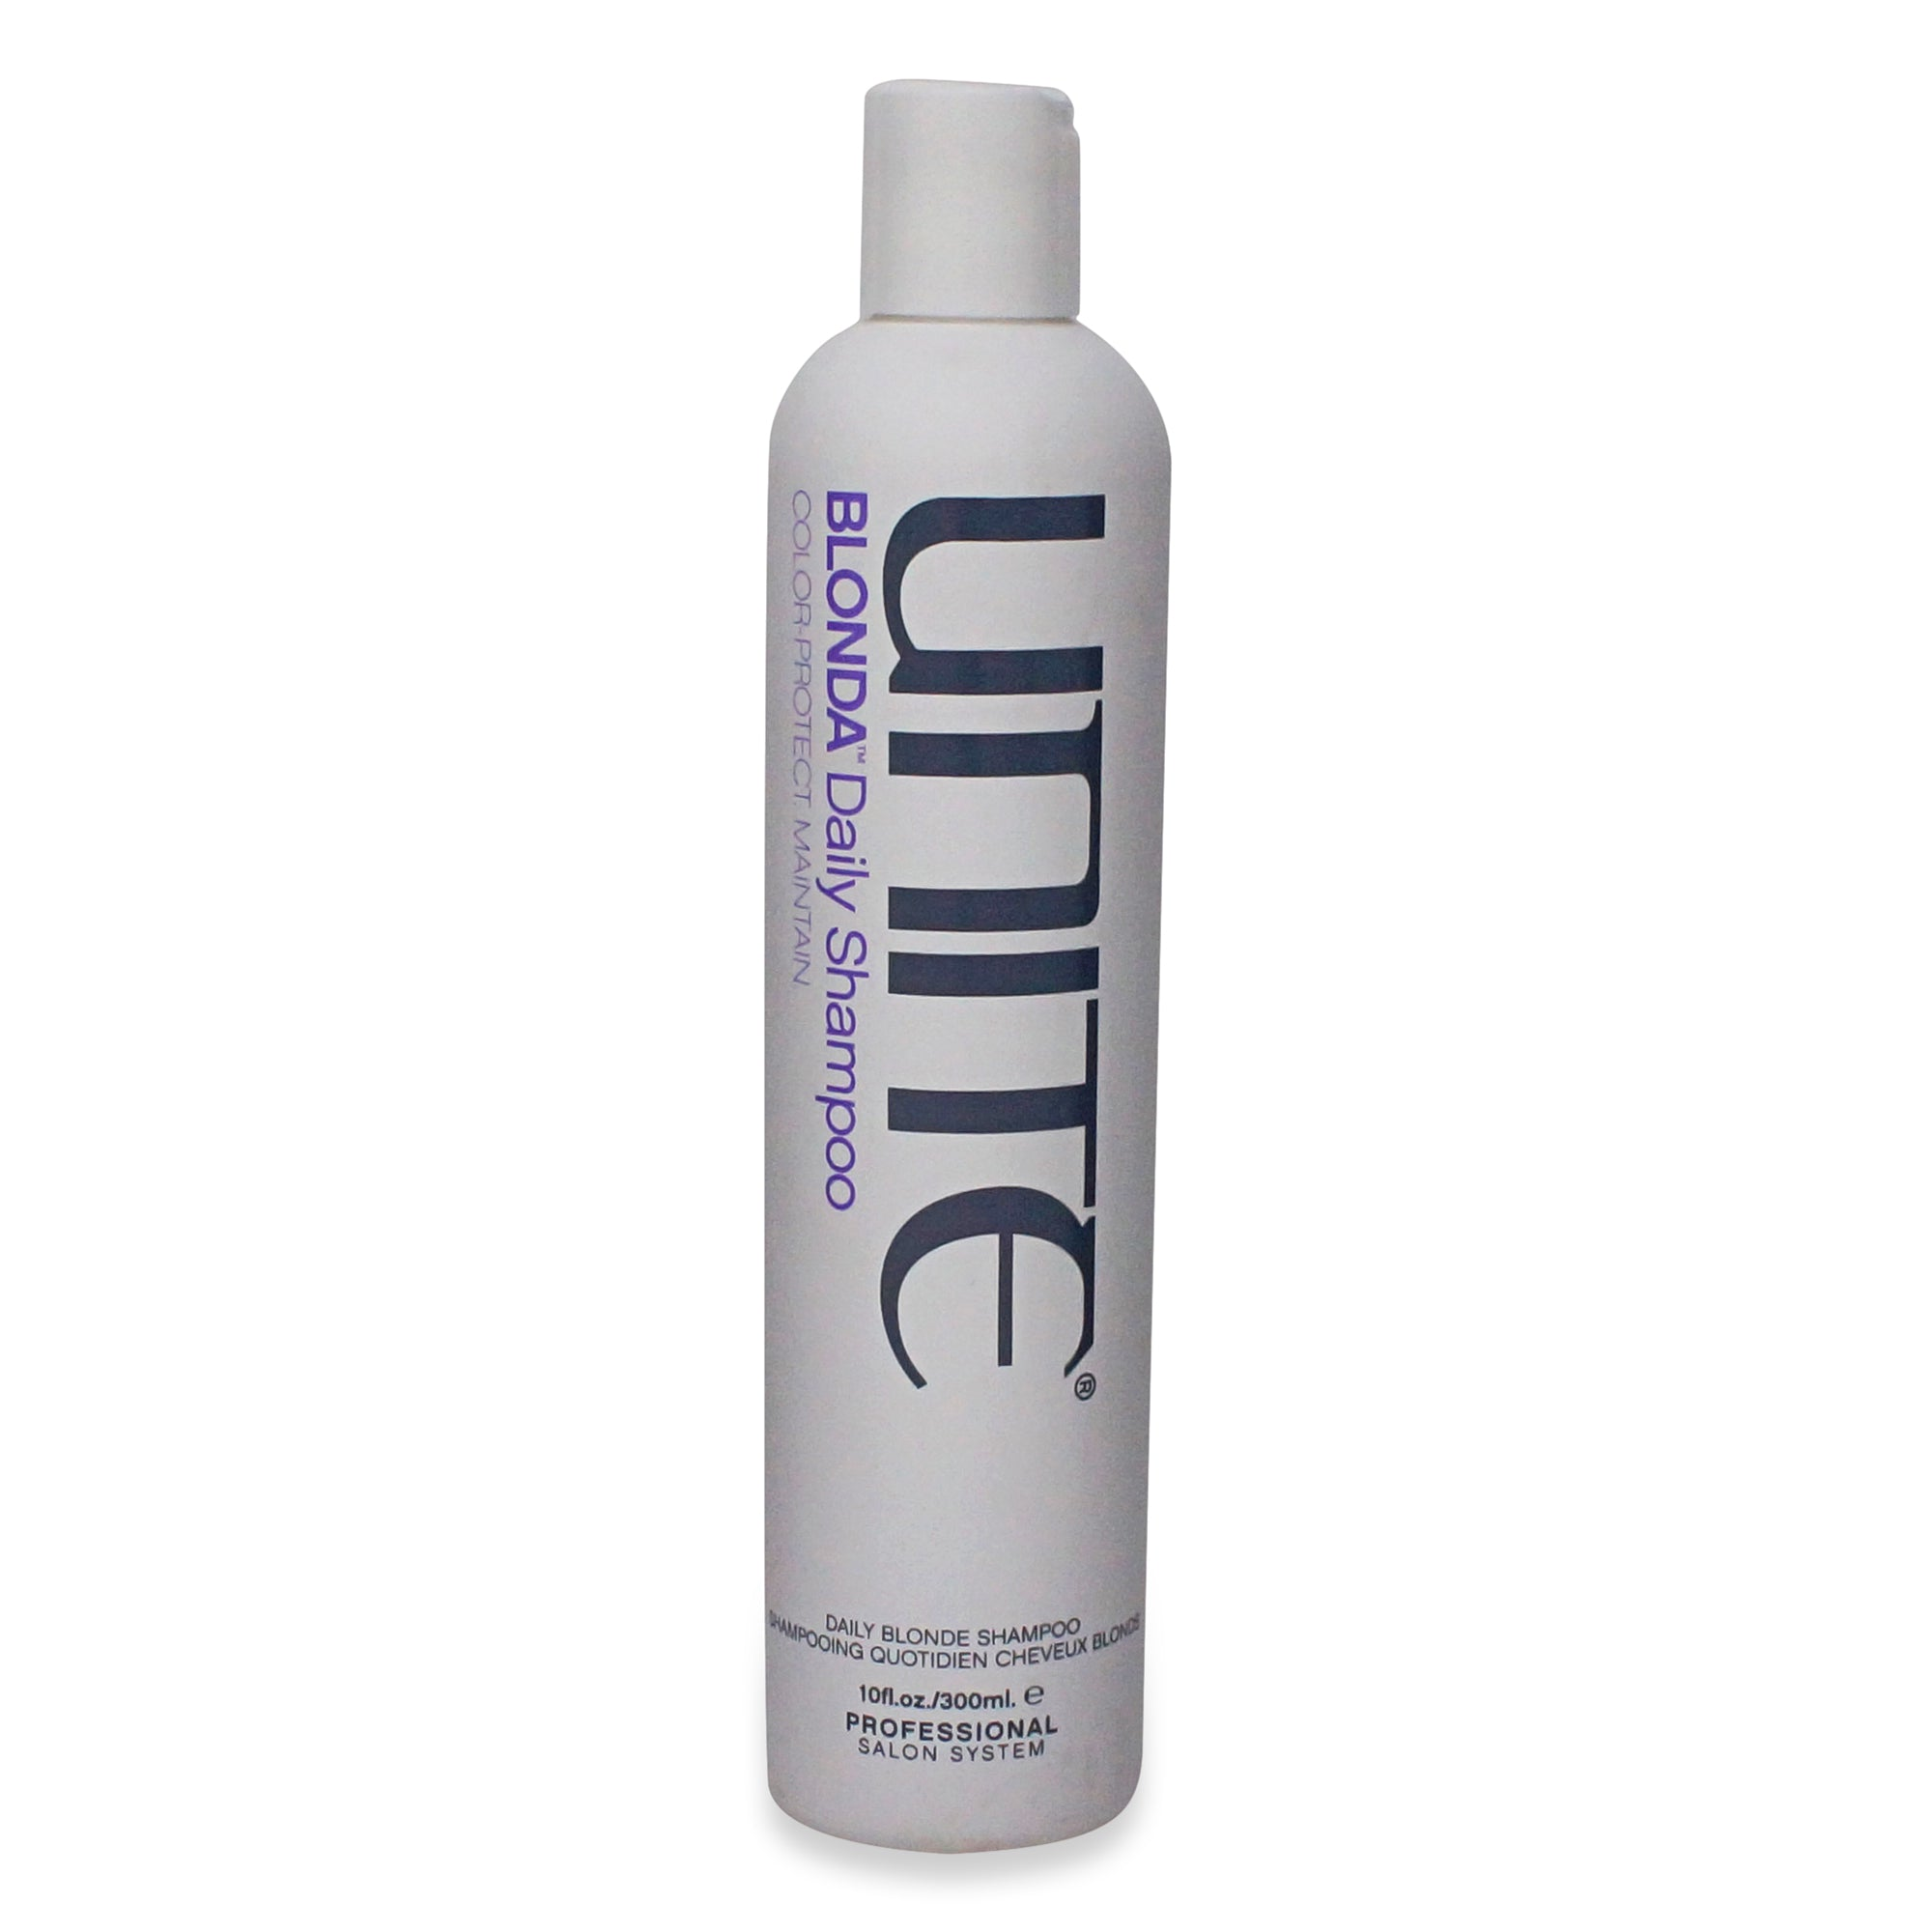 UNITE ~ BLONDA DAILY SHAMPOO ~ 10 OZ